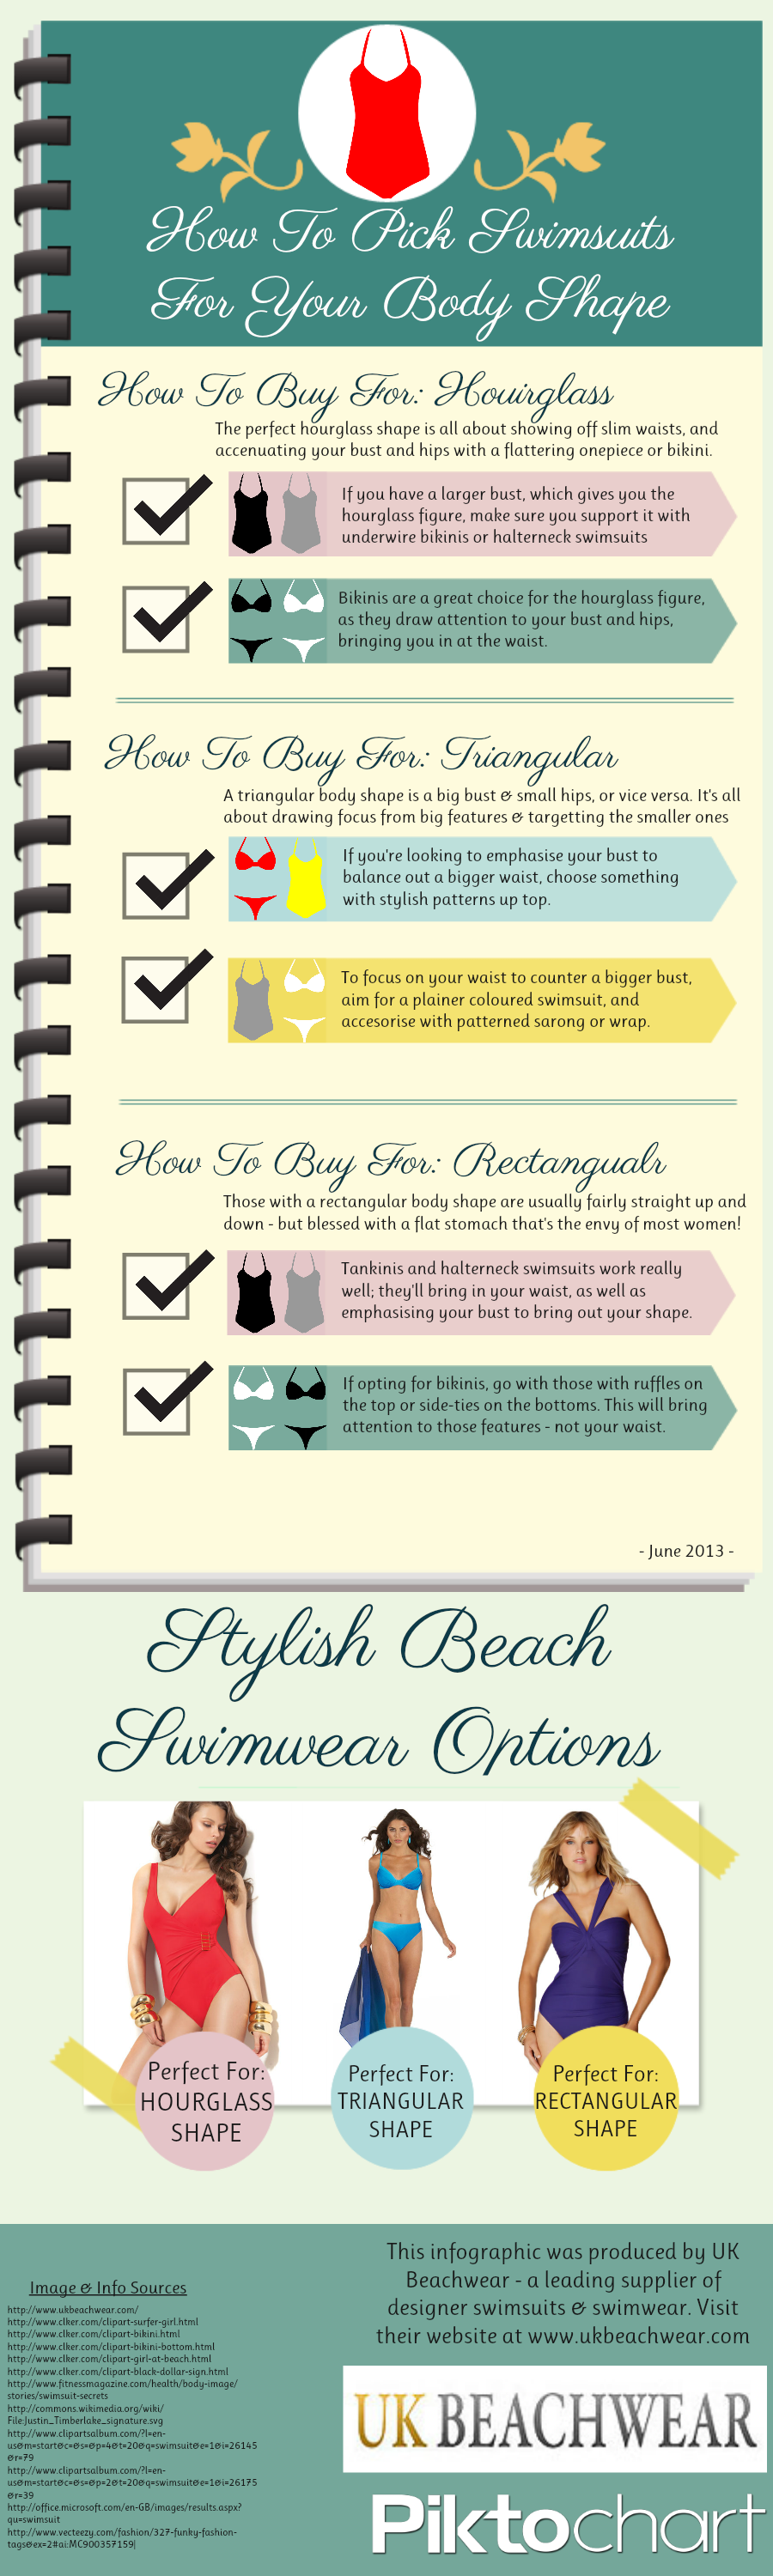 How To Pick Swimsuits For Your Body Shape